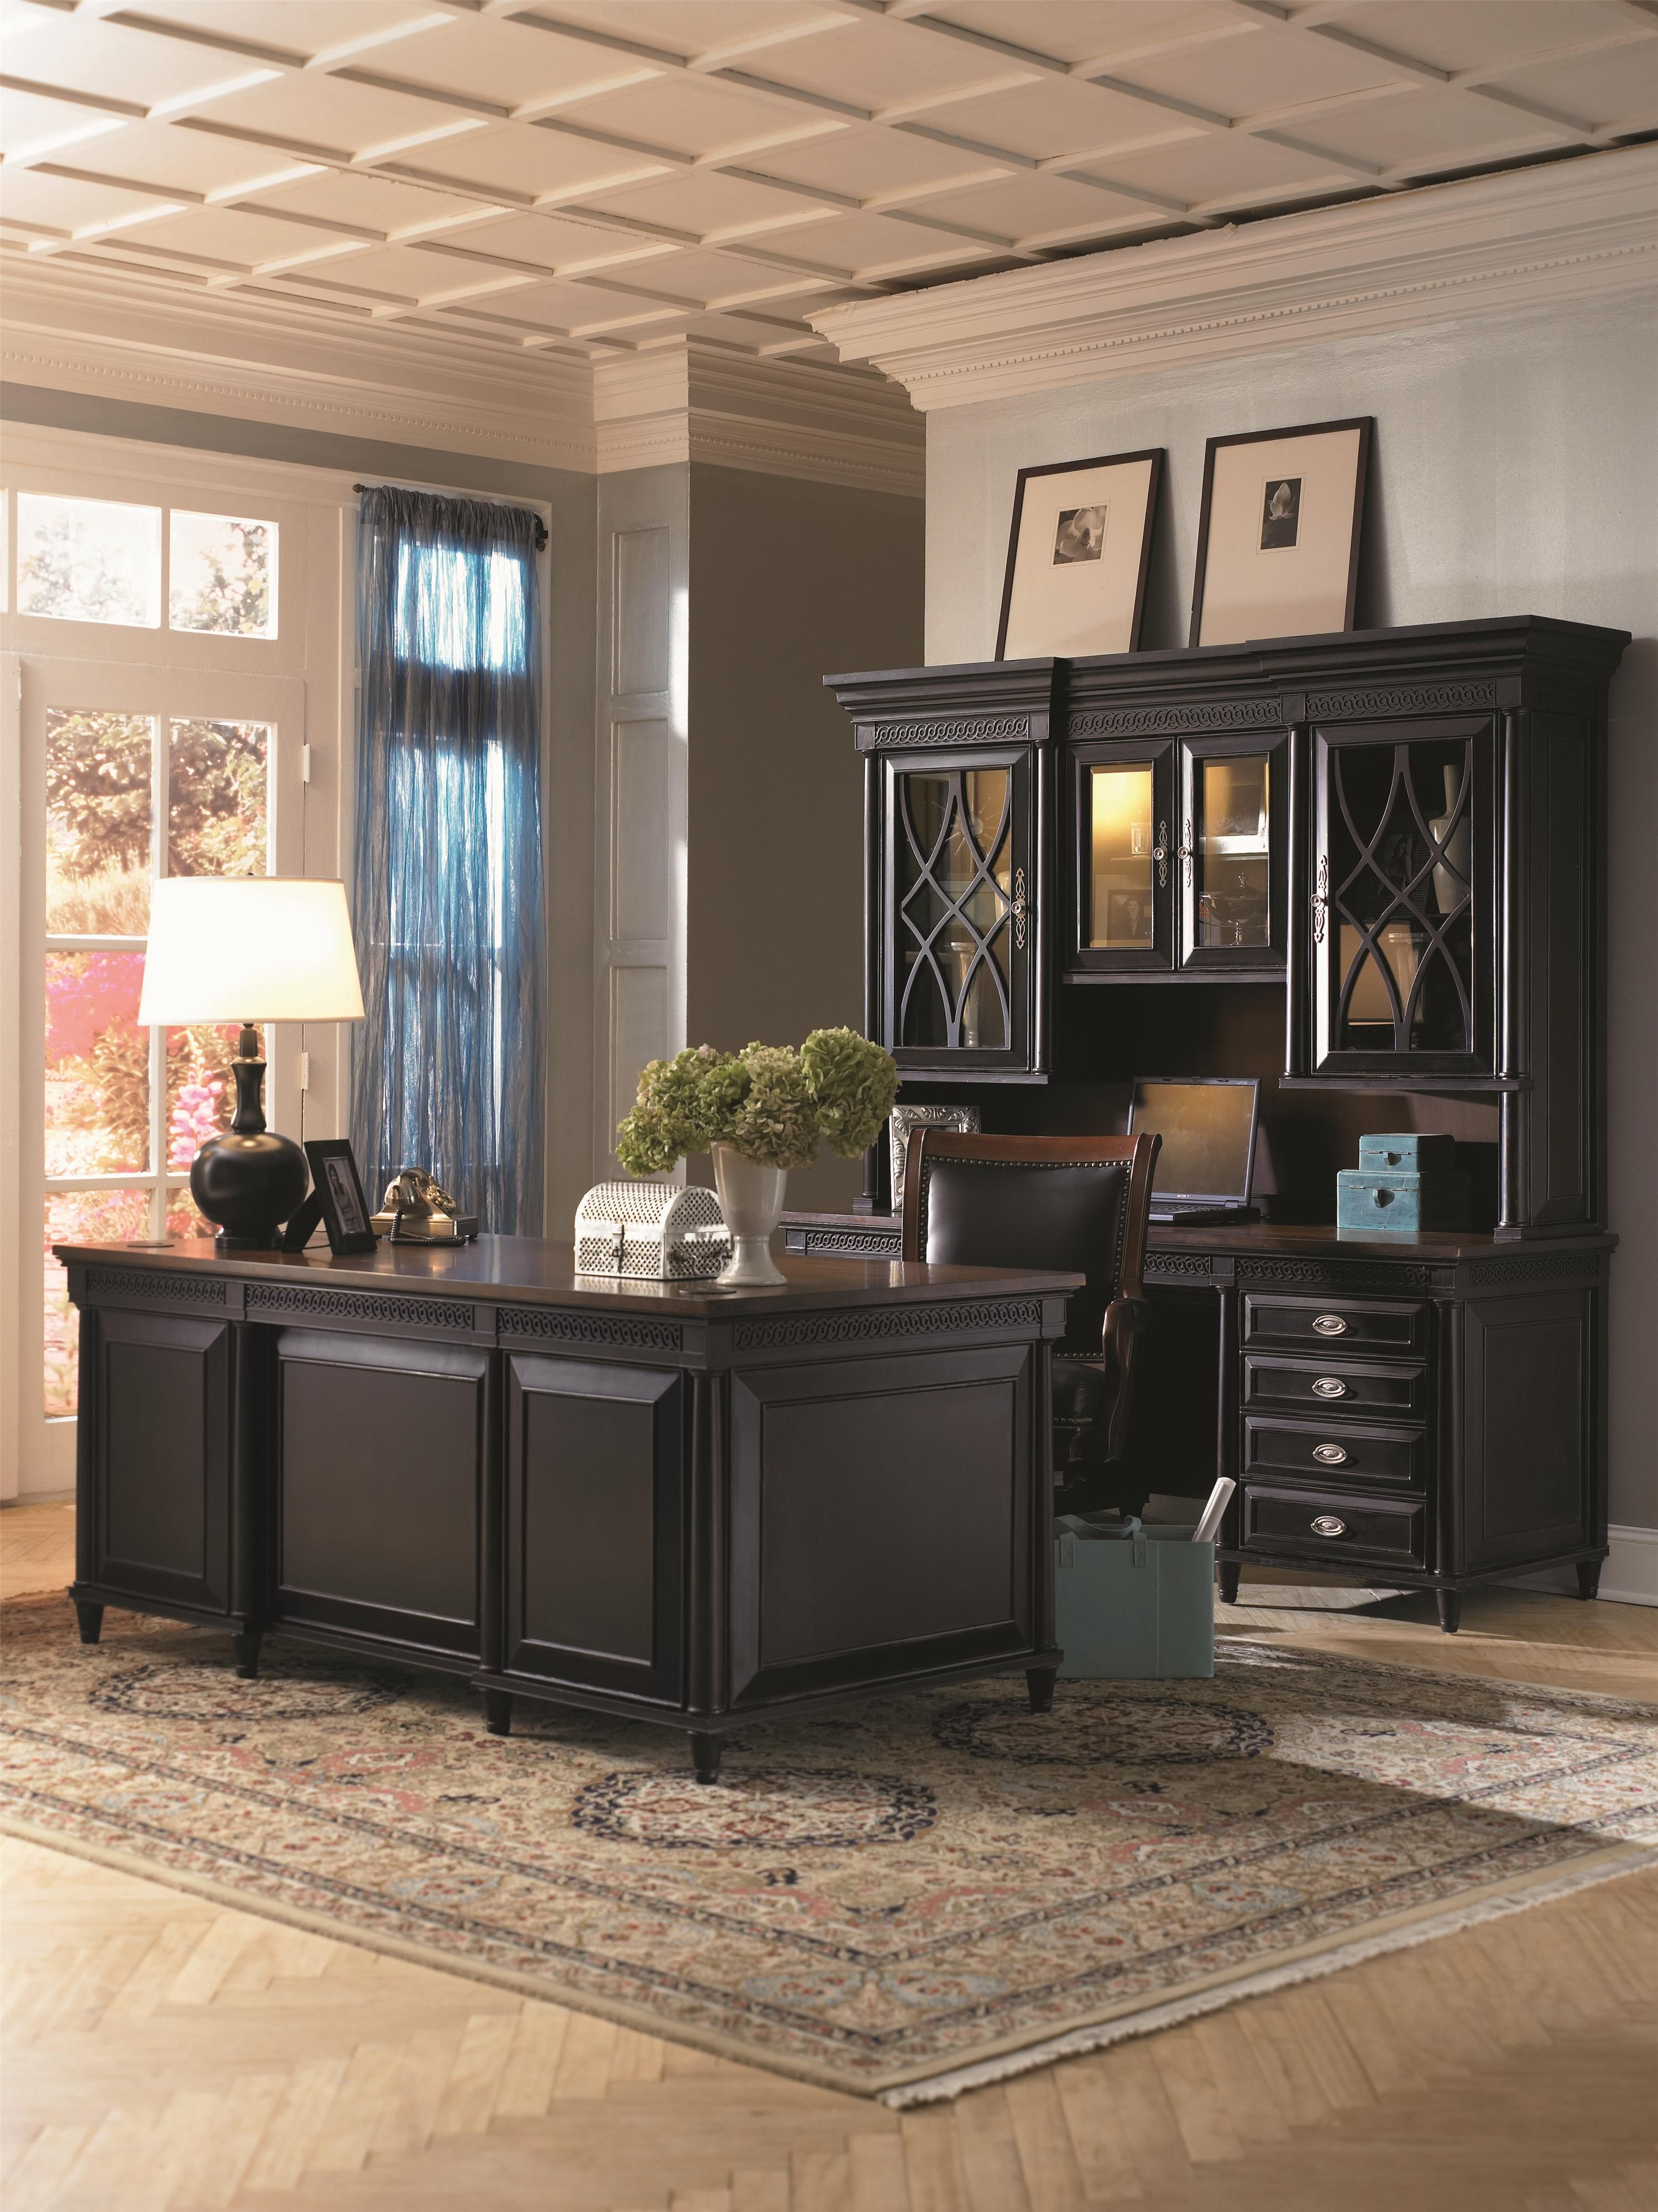 Home Office Furniture Home Office Decor Home Office Design: A Classy Home Office With A Beautiful Black And Brown Two-toned Desk And Exquisite Detailing